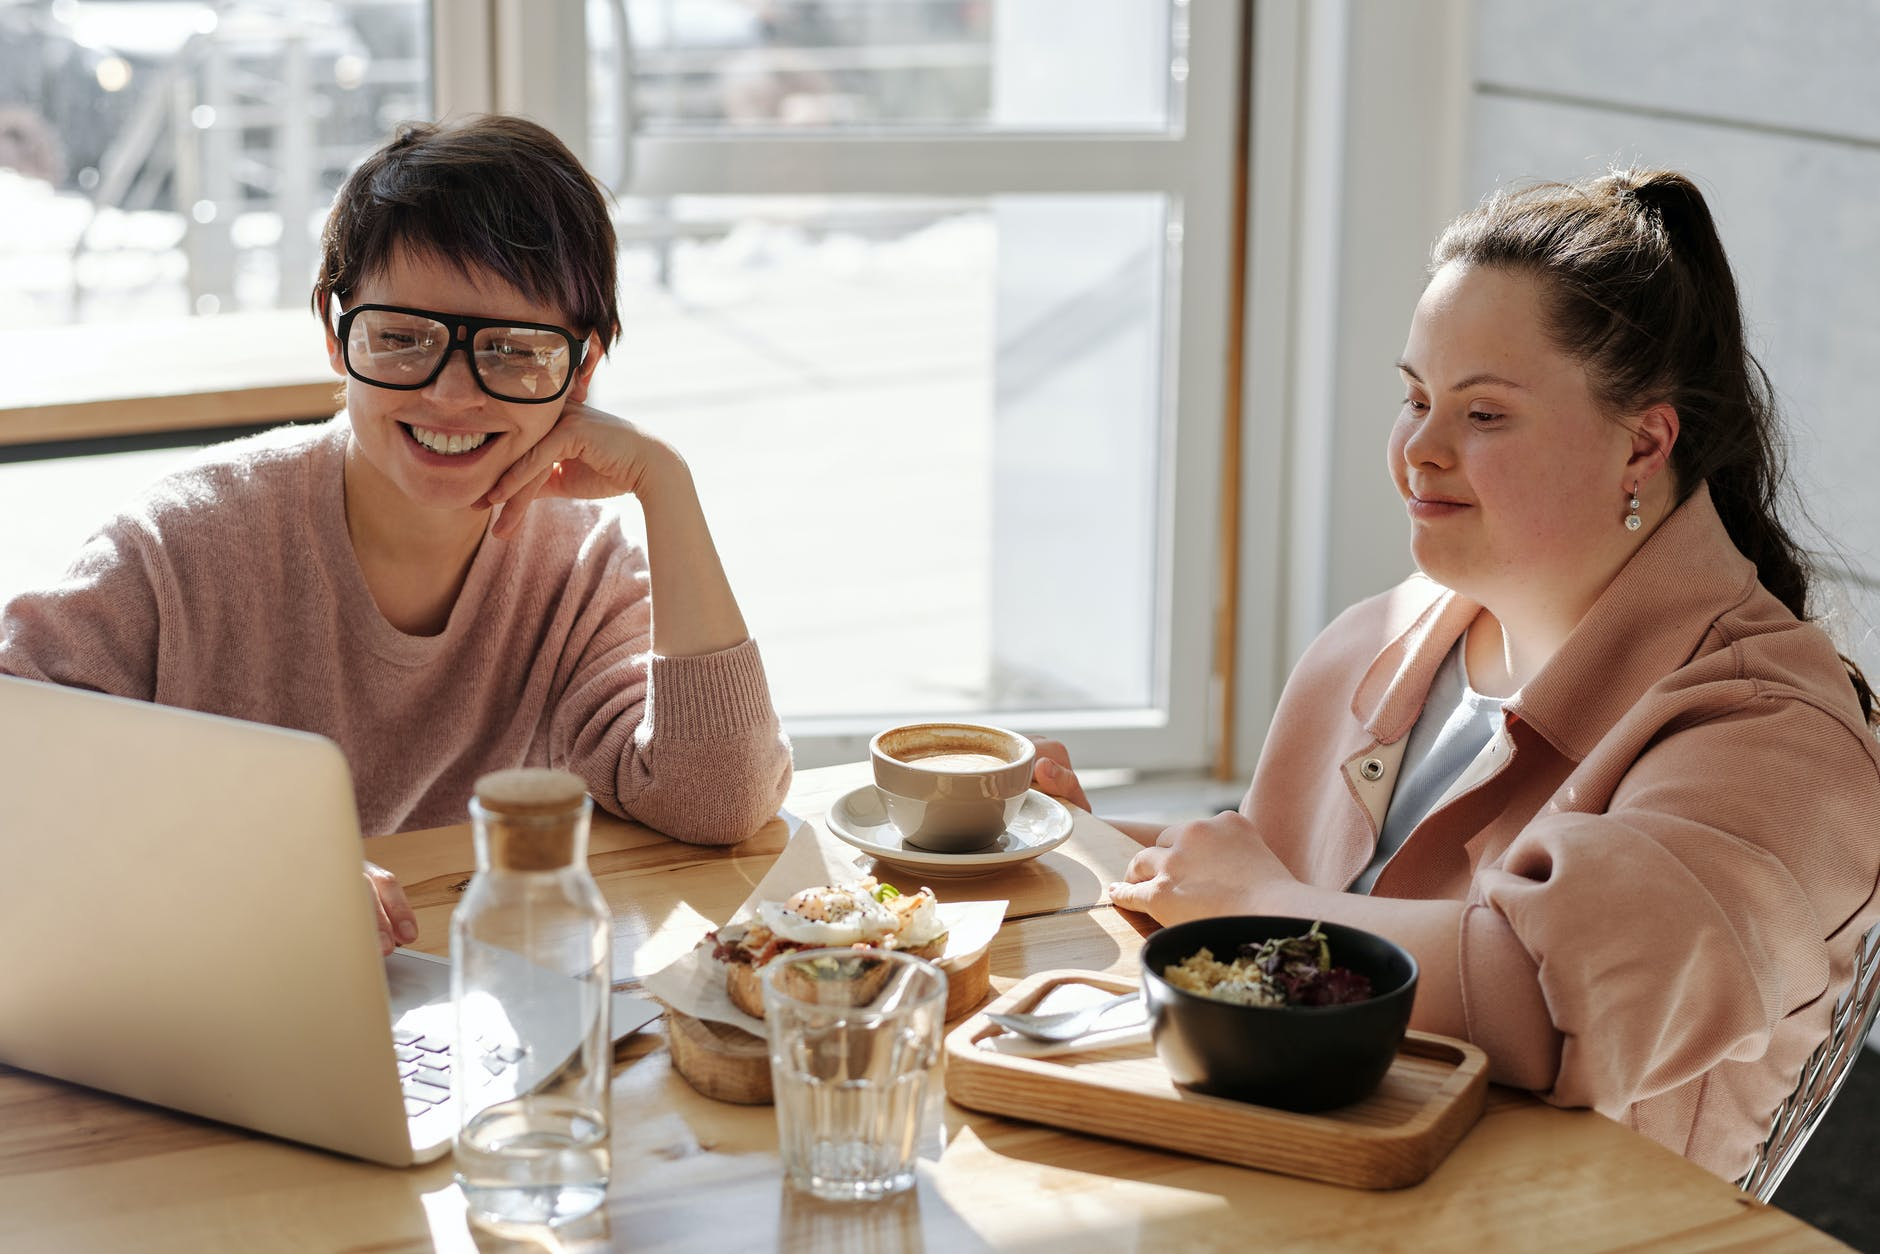 Two women chat and use a laptop.